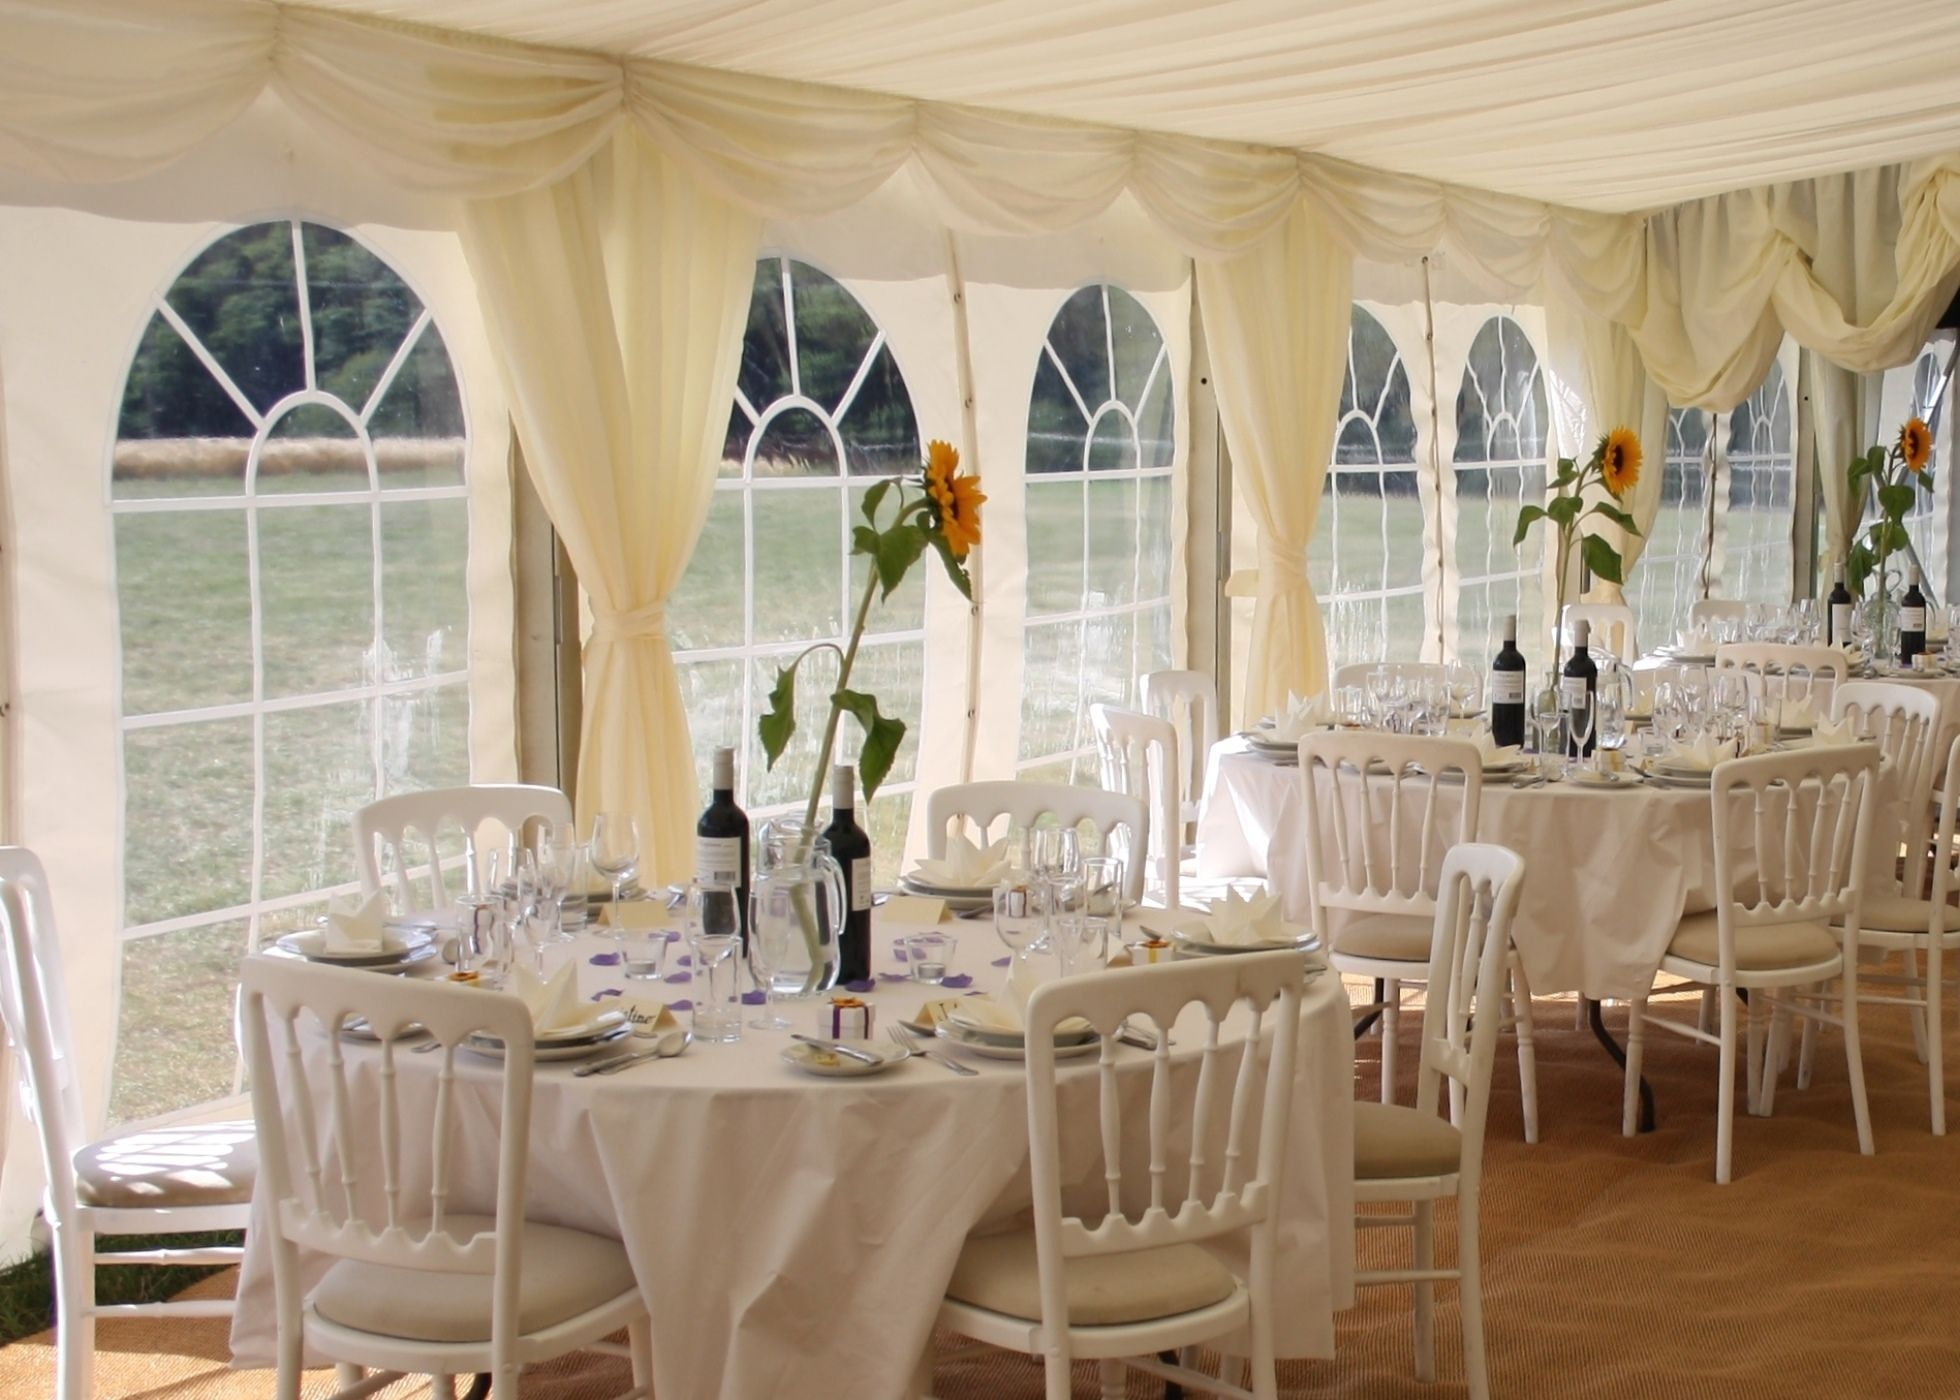 interior view of wedding marquee with sunflower table centres and white cheltenham chairs